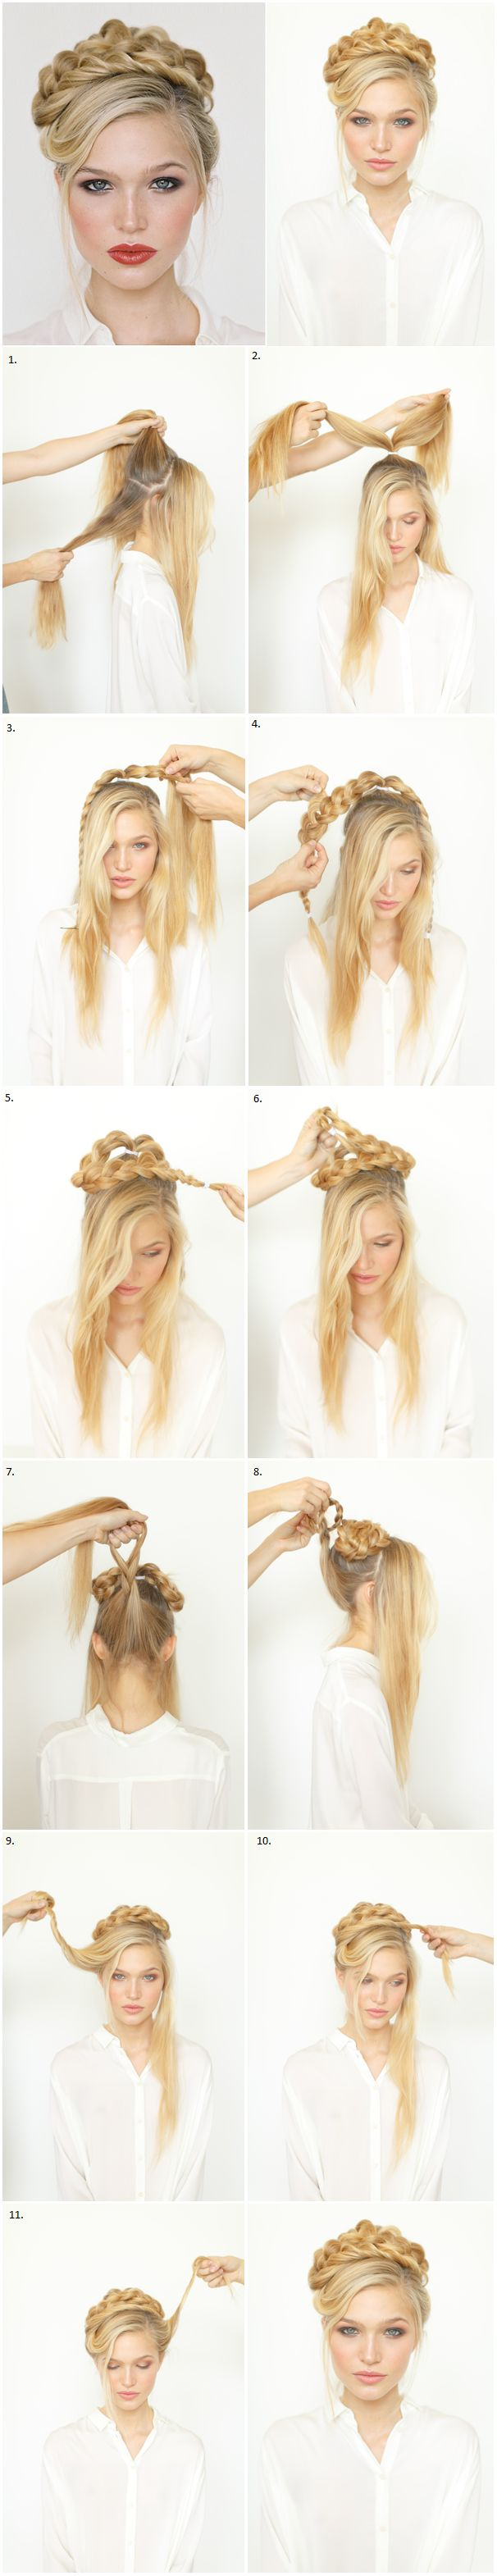 best tangled images on pinterest hairstyle ideas wedding